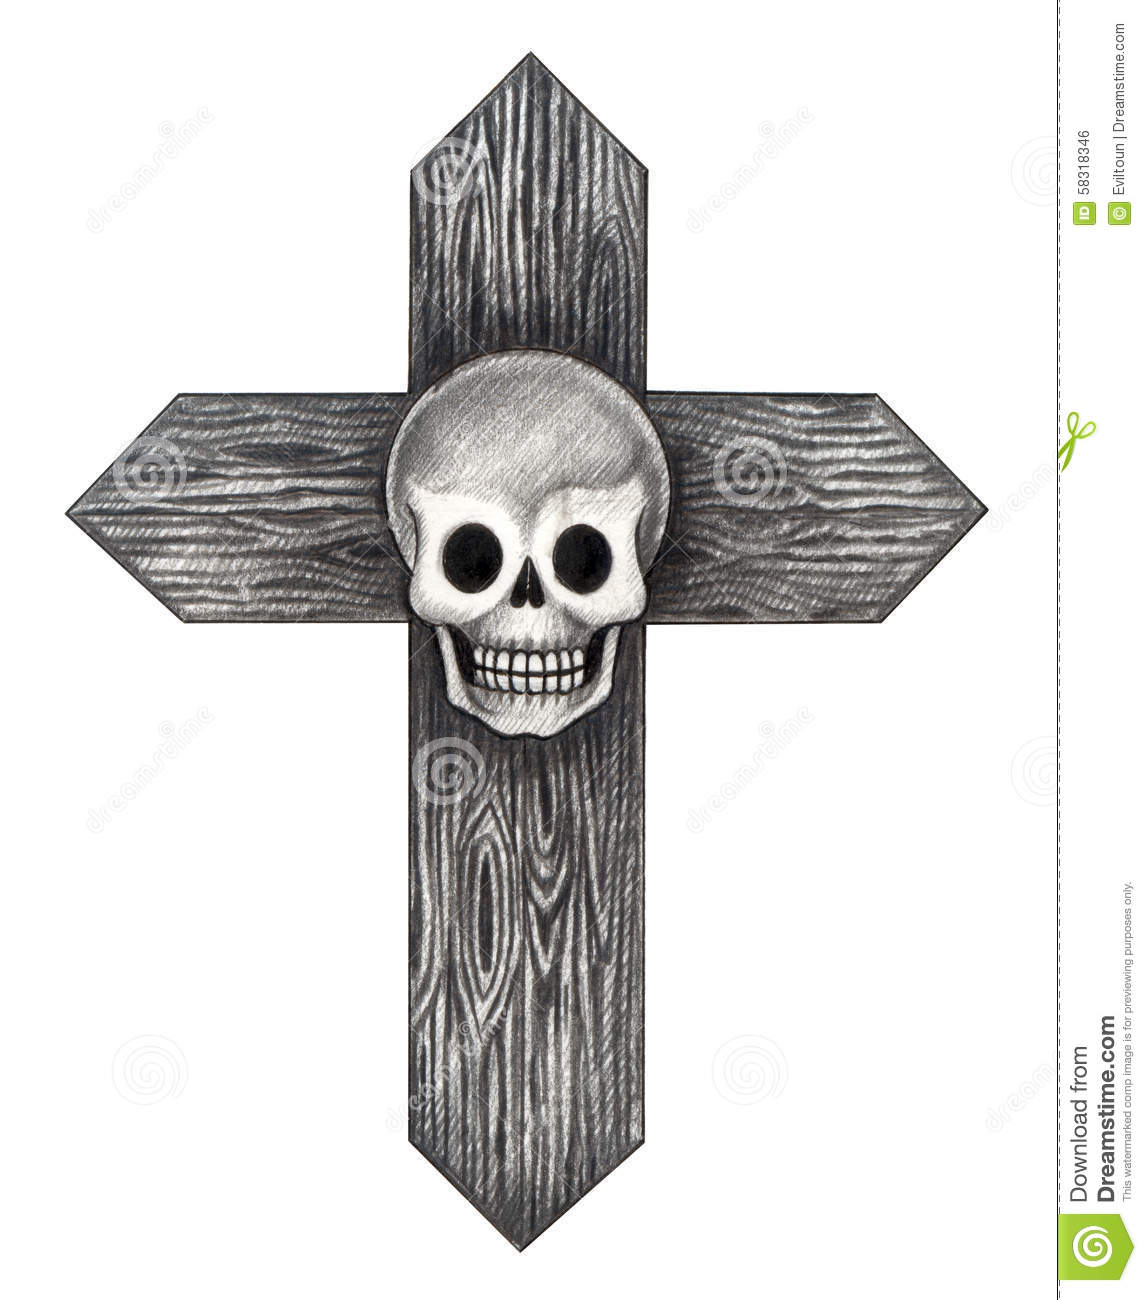 art skull cross tattoo stock illustration image 58318346. Black Bedroom Furniture Sets. Home Design Ideas